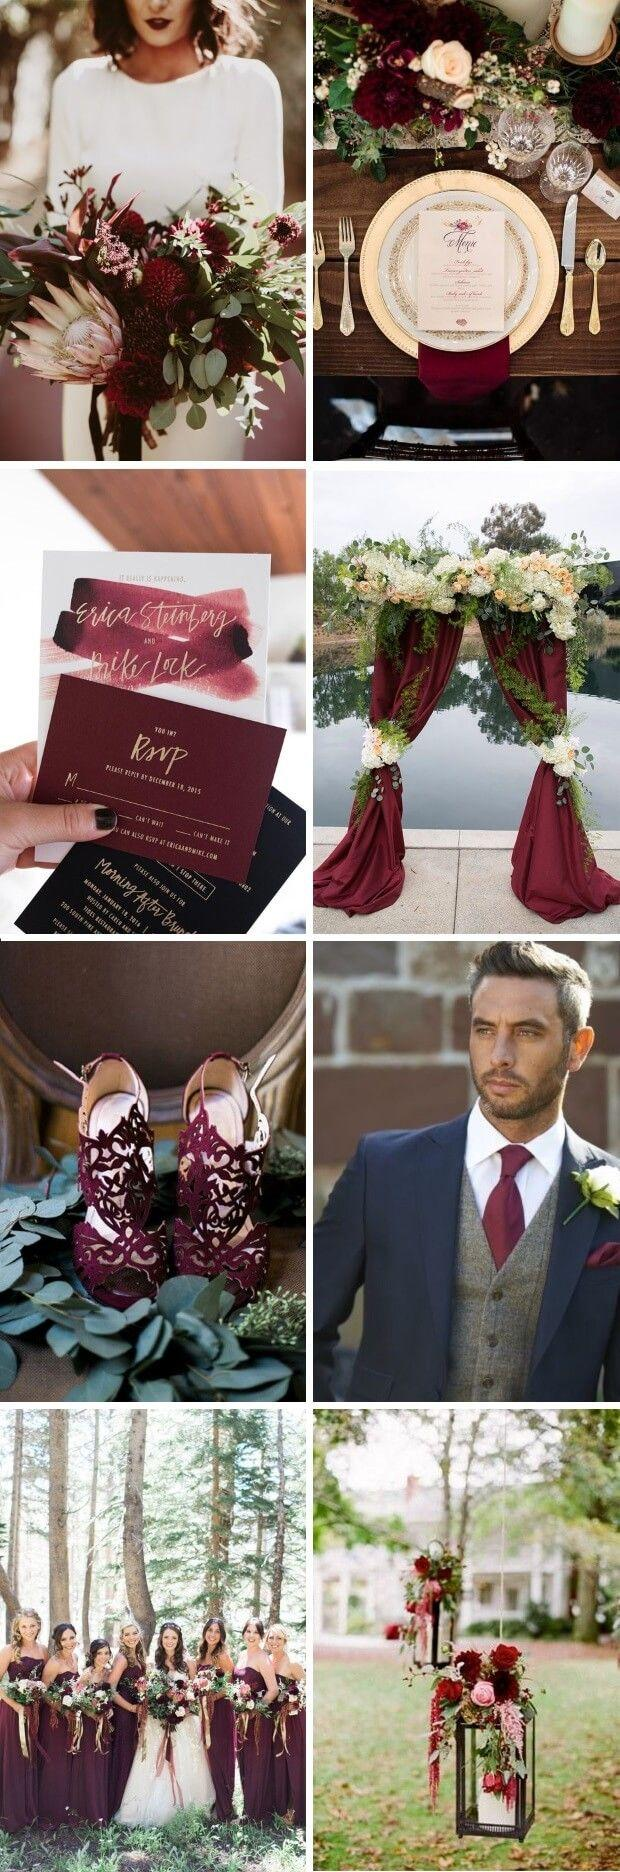 Mariage - A Magical Maroon, Gold & Navy Palette For An Elegant Winter Wedding